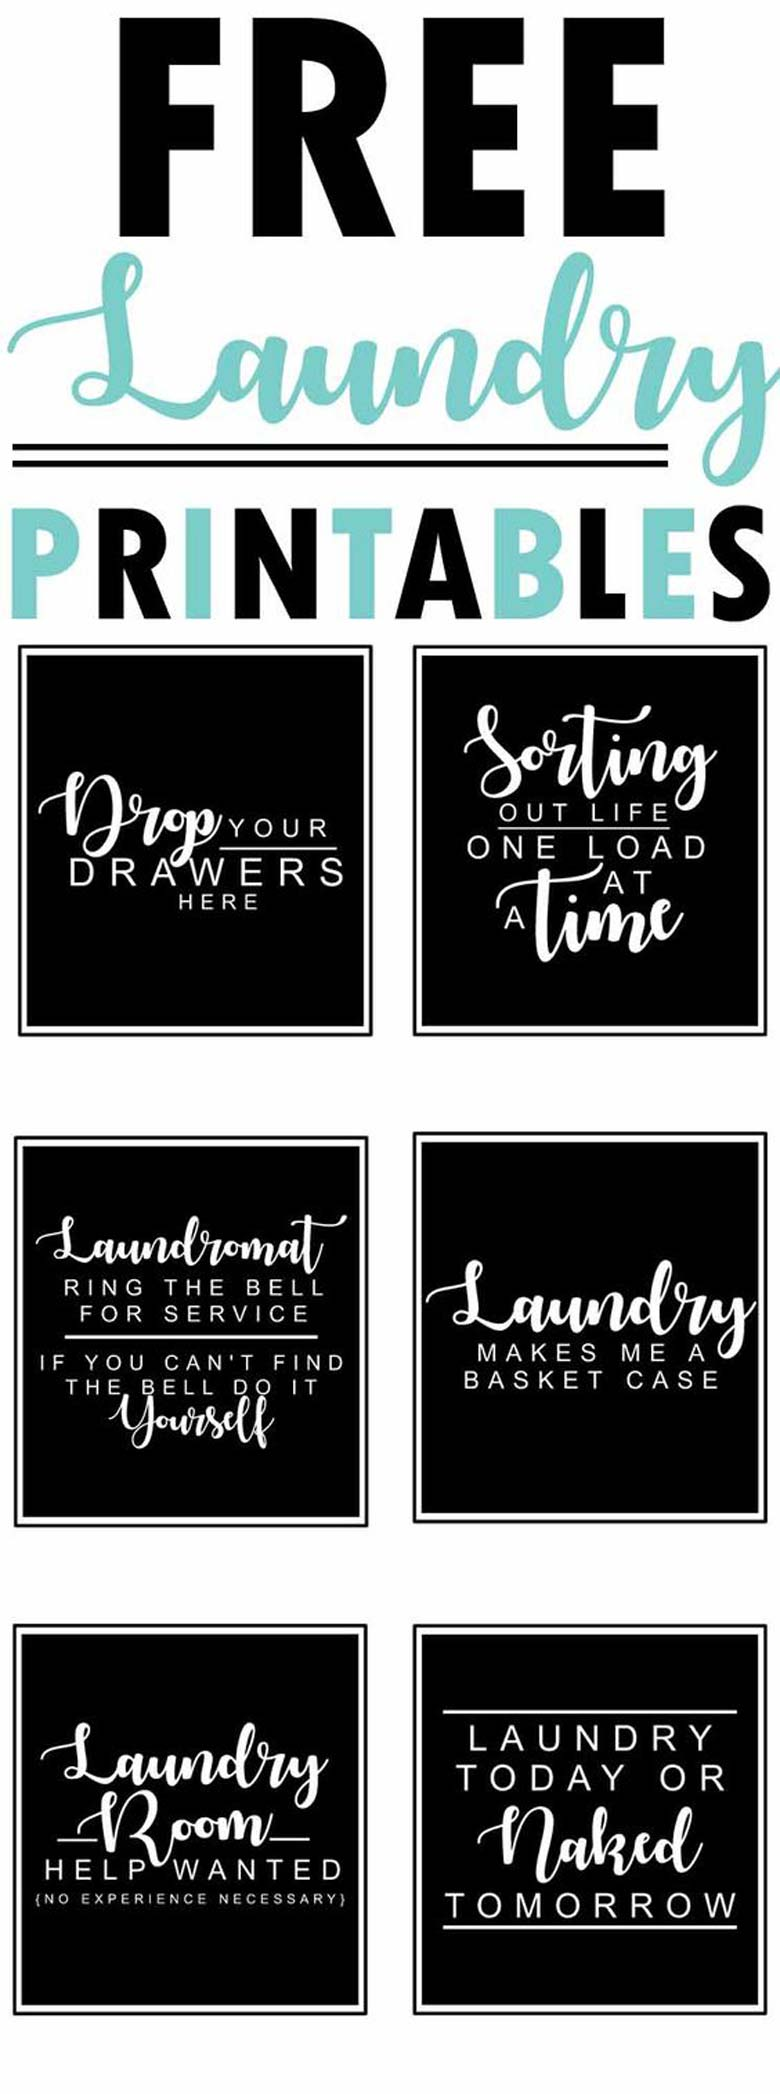 6 free farmhouse-style black and white laundry room printables with funny quotes and sayings - collection by craft-mart #freeprintables #modernfarmhousedecor #funnylaundryroomprintables #funnyquotes4laundryroom #freeblackandwhiteprintables